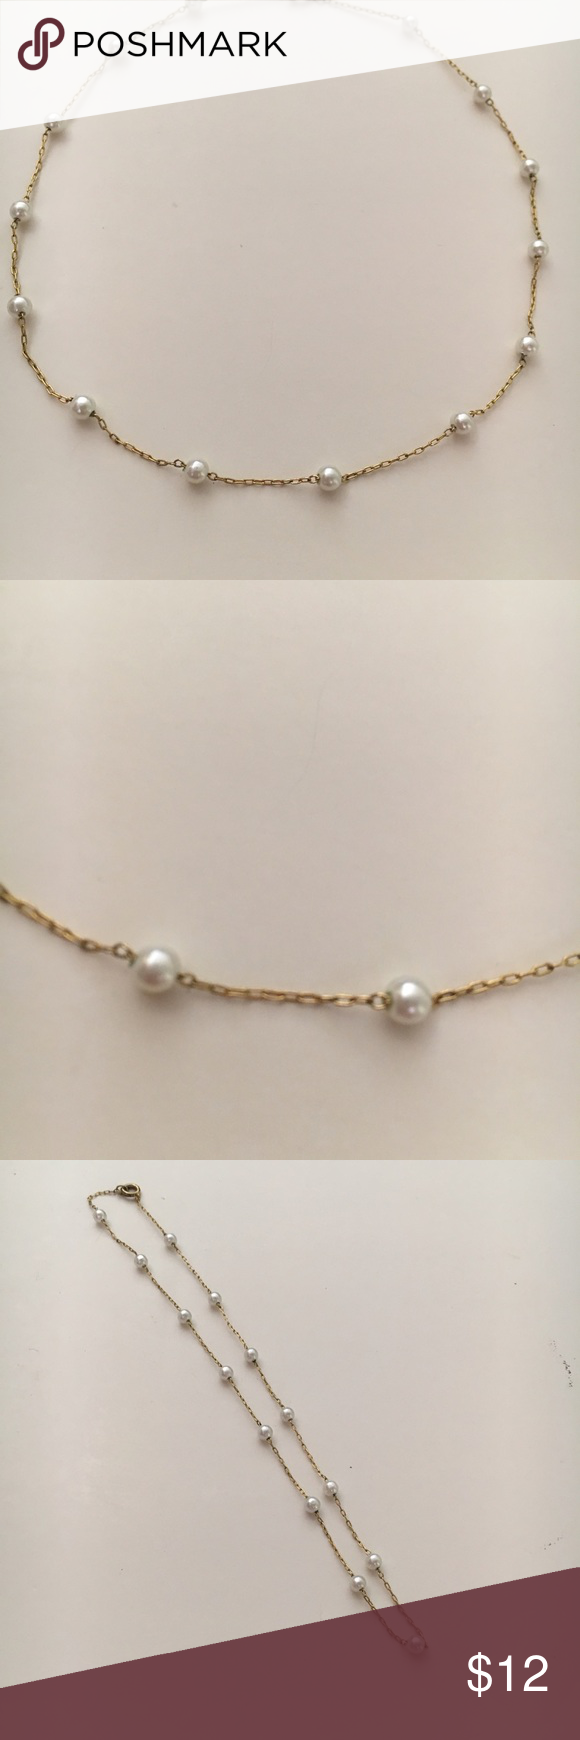 """14"""" Station Pearl Necklace Dainty 14"""" necklace with 14 pearls. EUC. I assume this is costume jewelry but the pearls look amazing.  No markings. Jewelry Necklaces"""